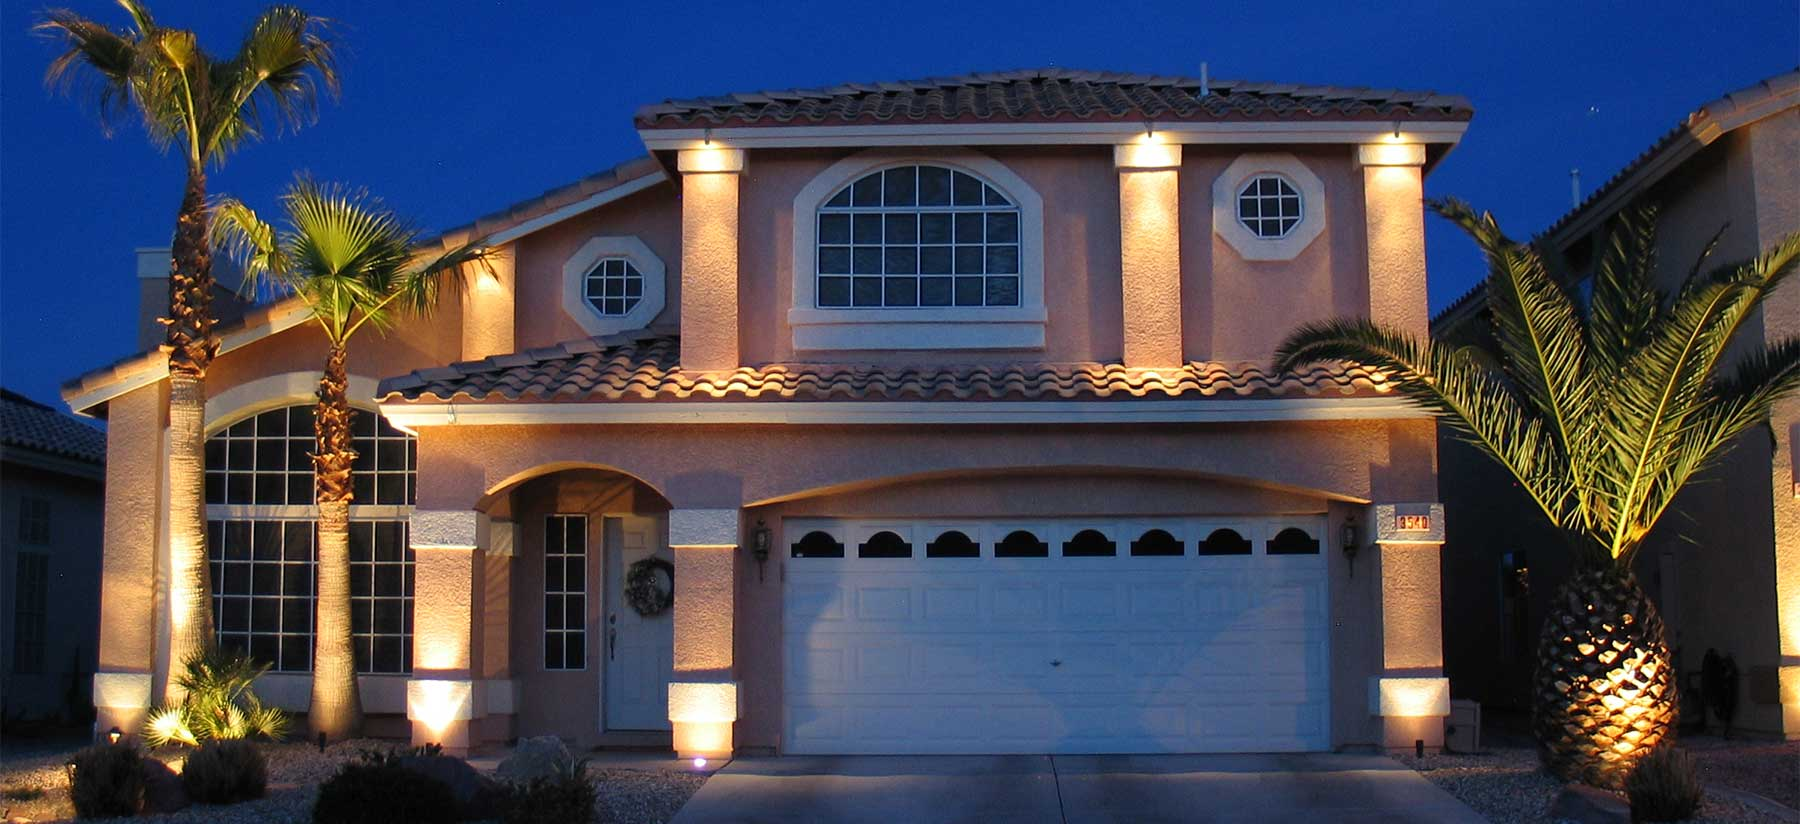 Las Vegas Landscape Lighting, Outdoor Patio Lighting | Twilight Designs - After